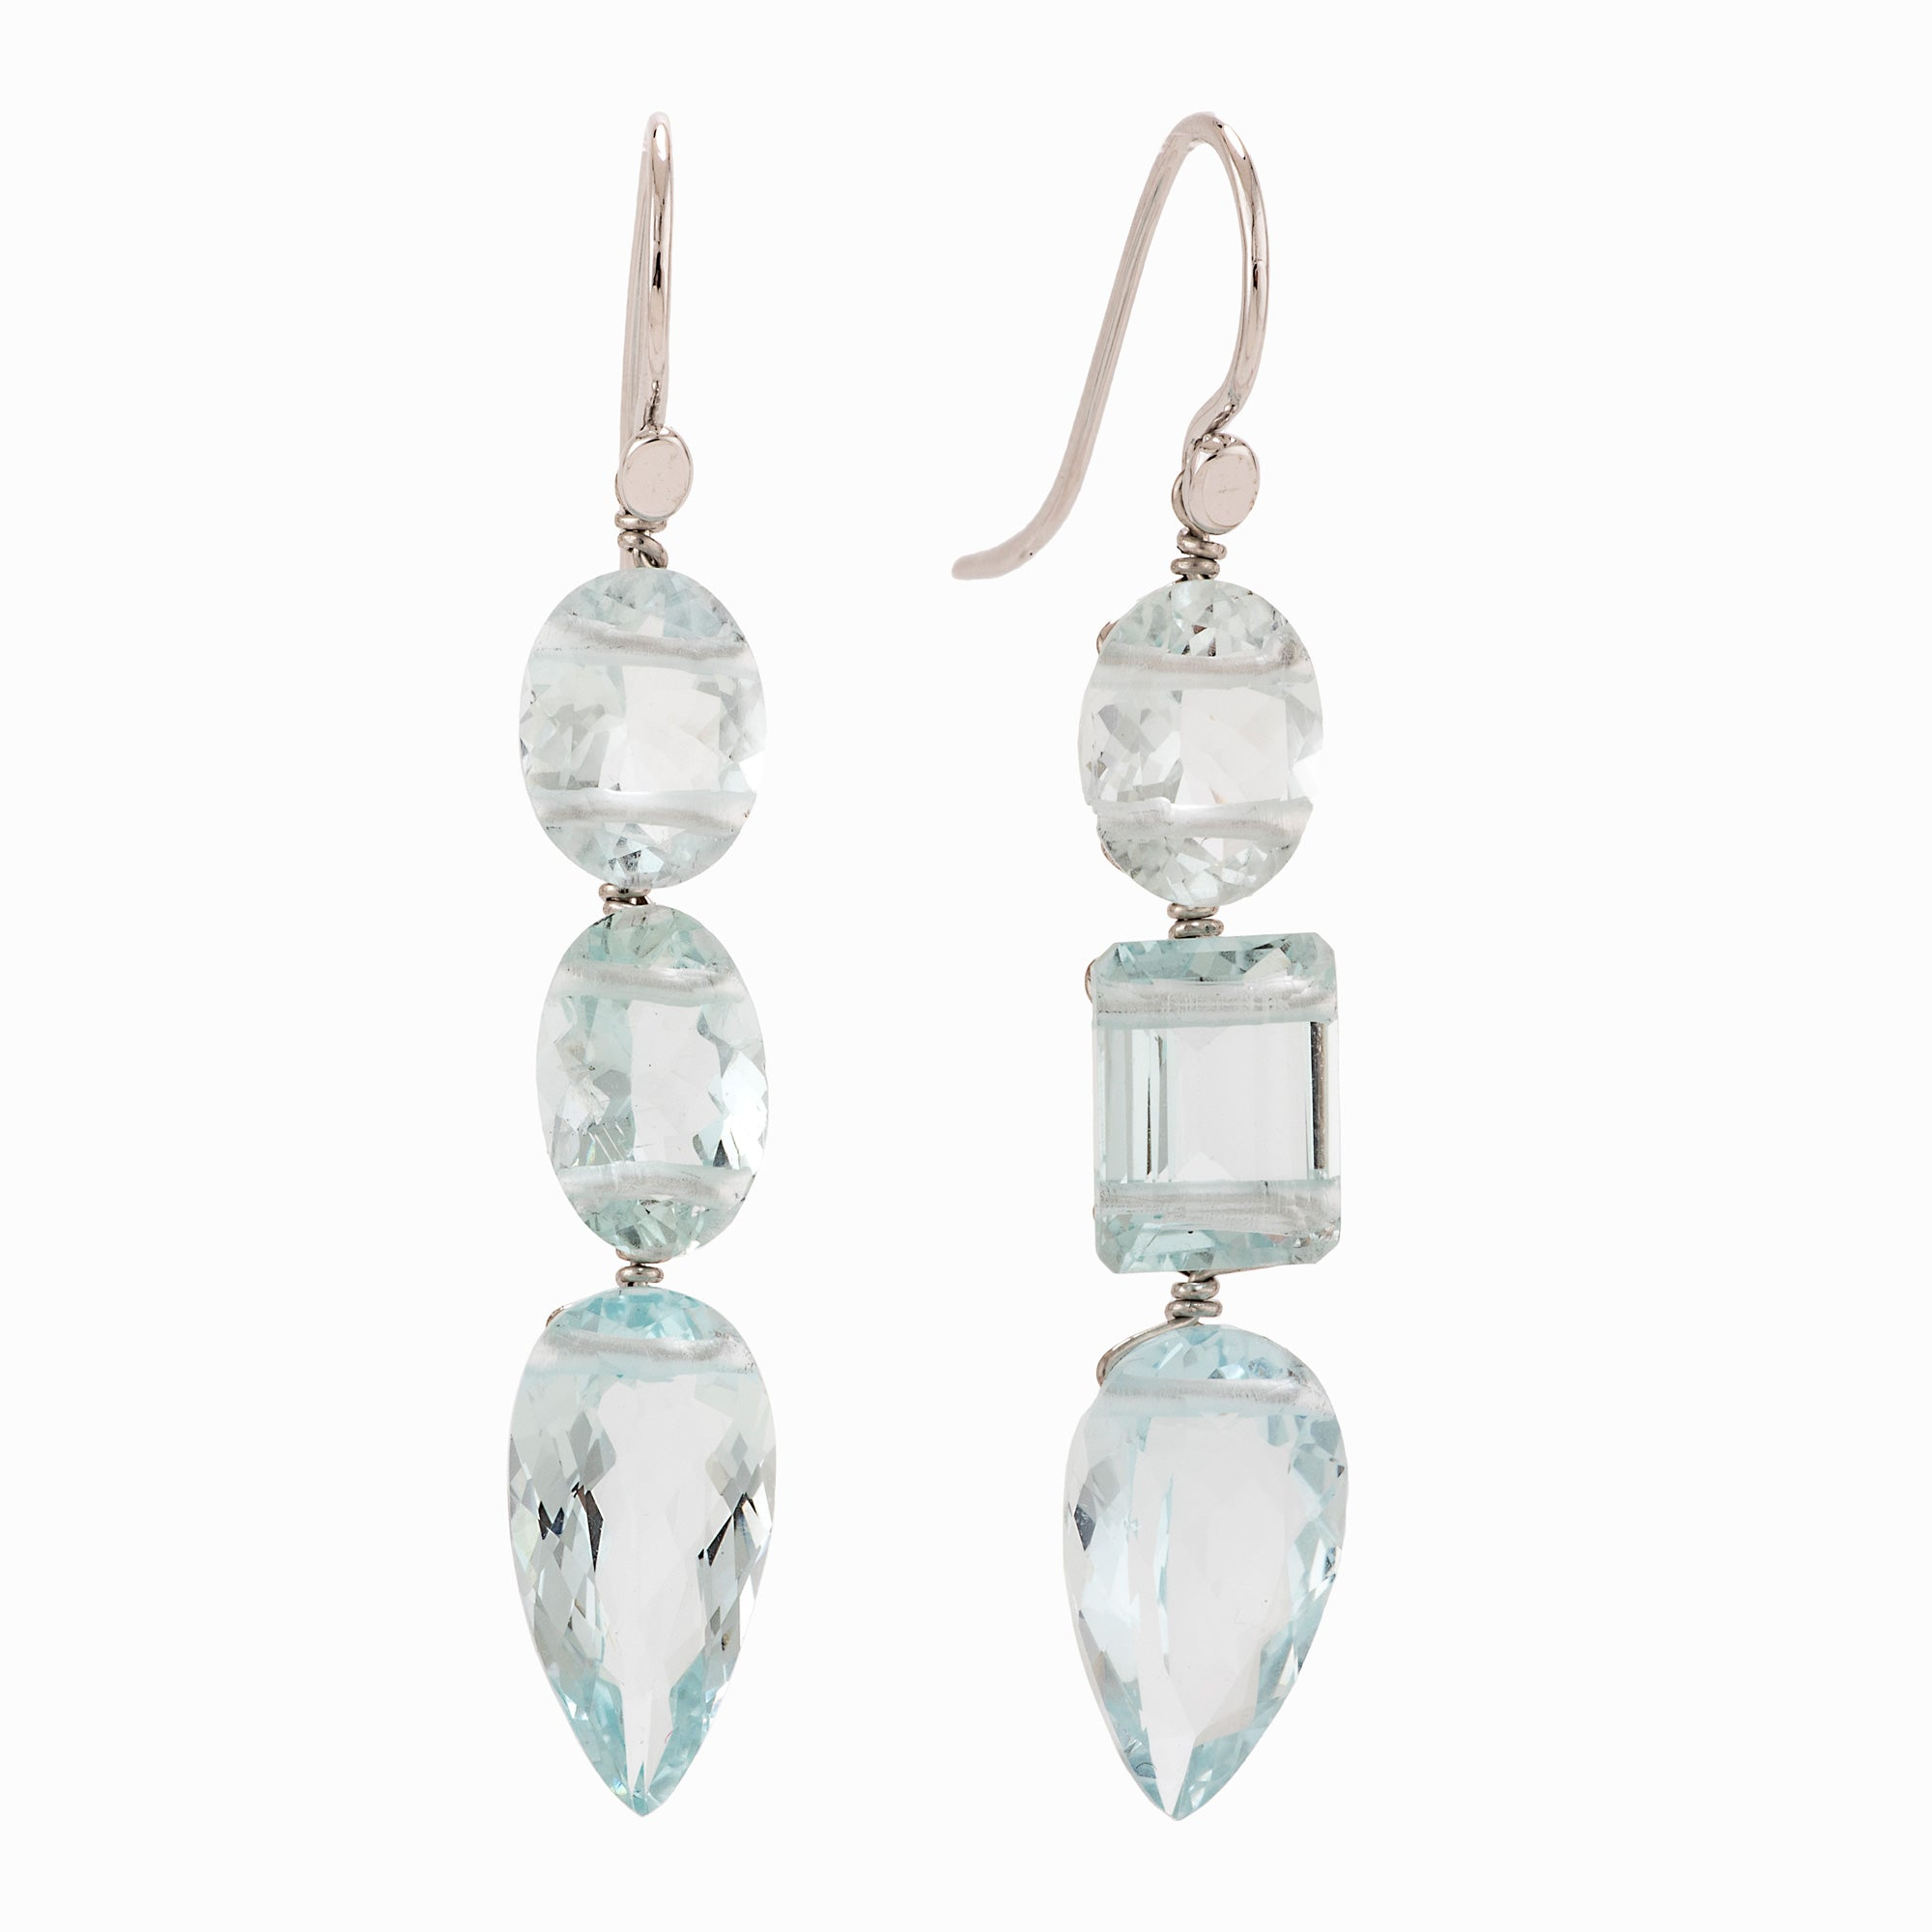 Shimmer III aquamarine earrings